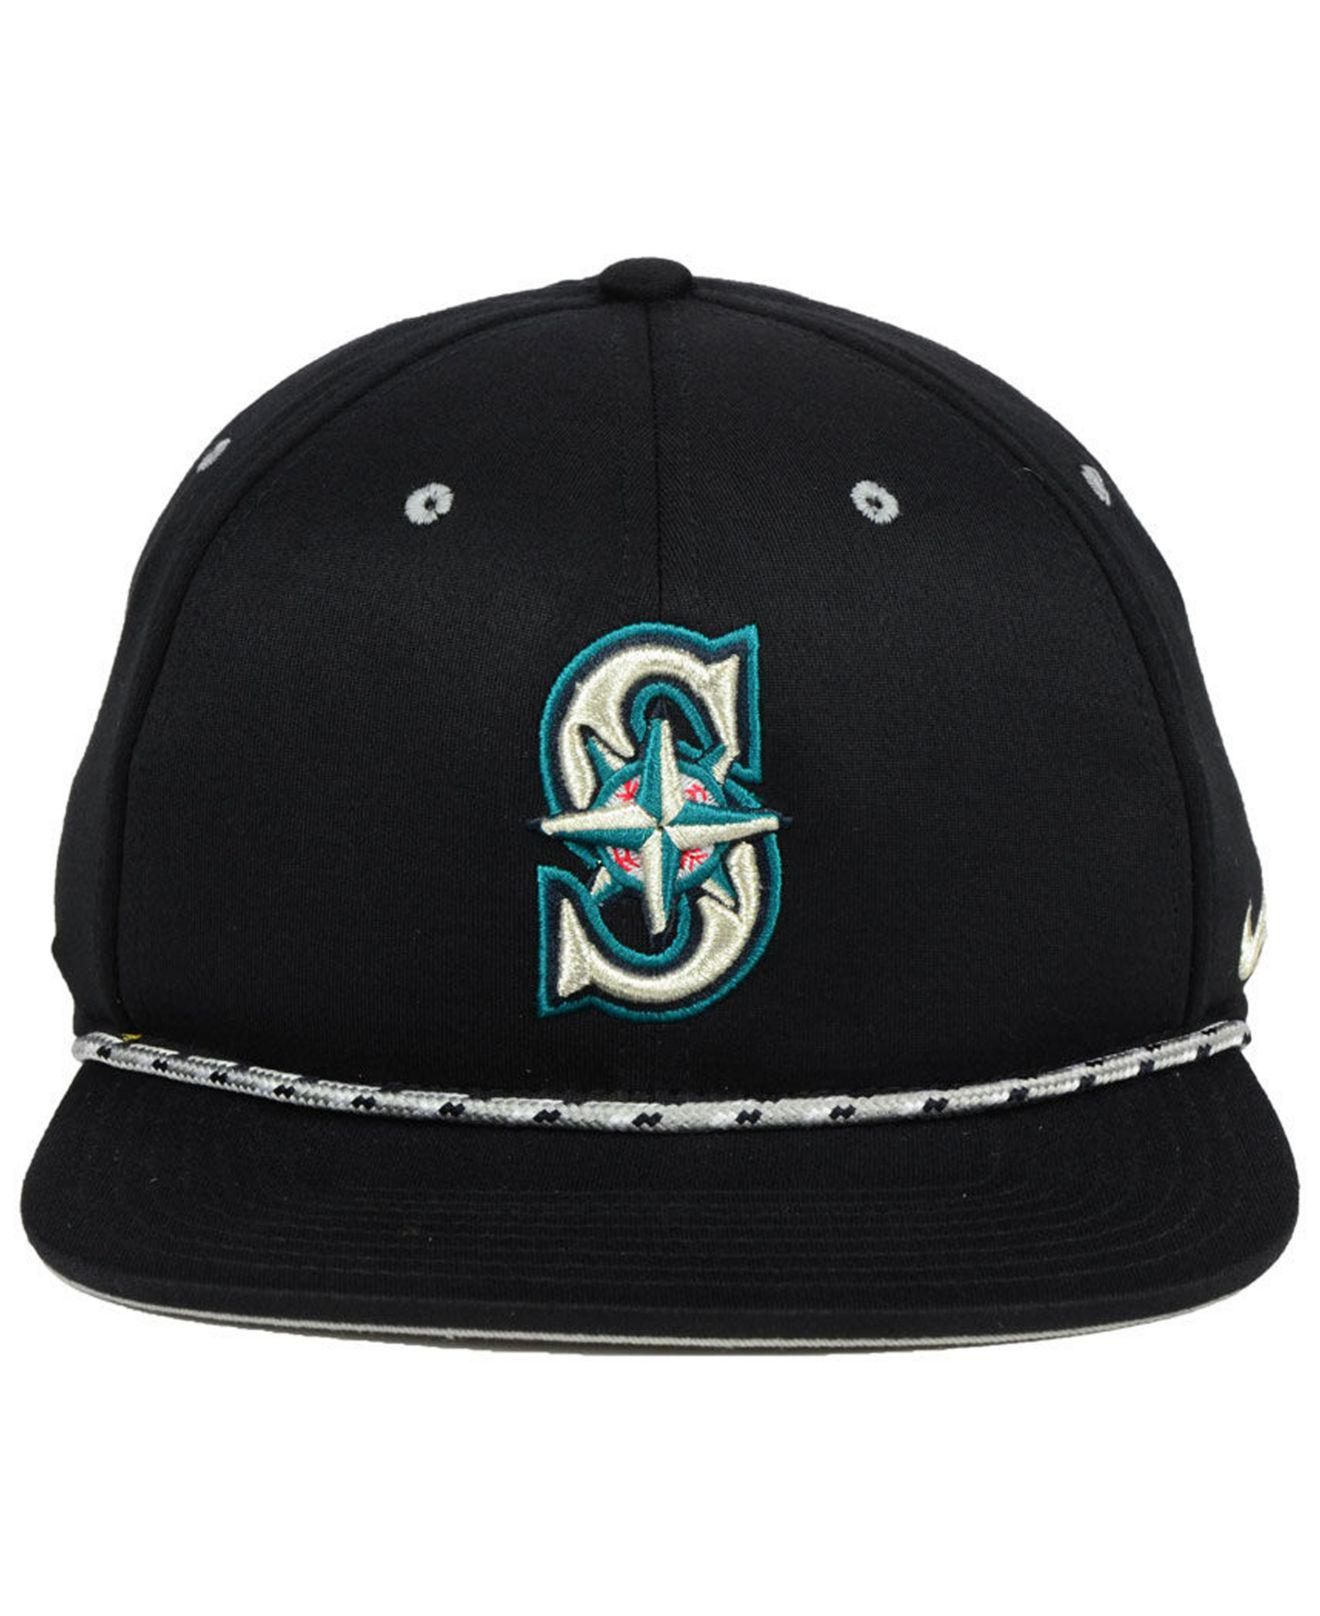 best service 5ba01 17ee7 ... clearance lyst nike seattle mariners string bill snapback cap in black  for men d79cc 32cb0